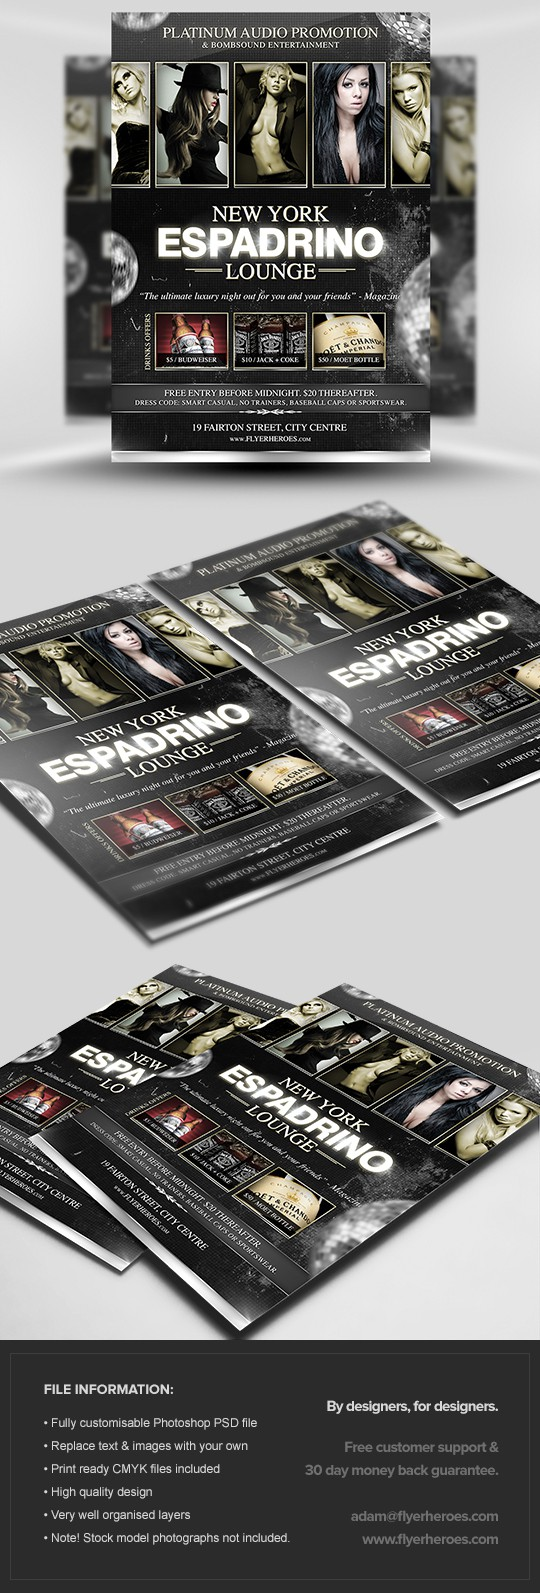 Espadrino Lounge Flyer Template